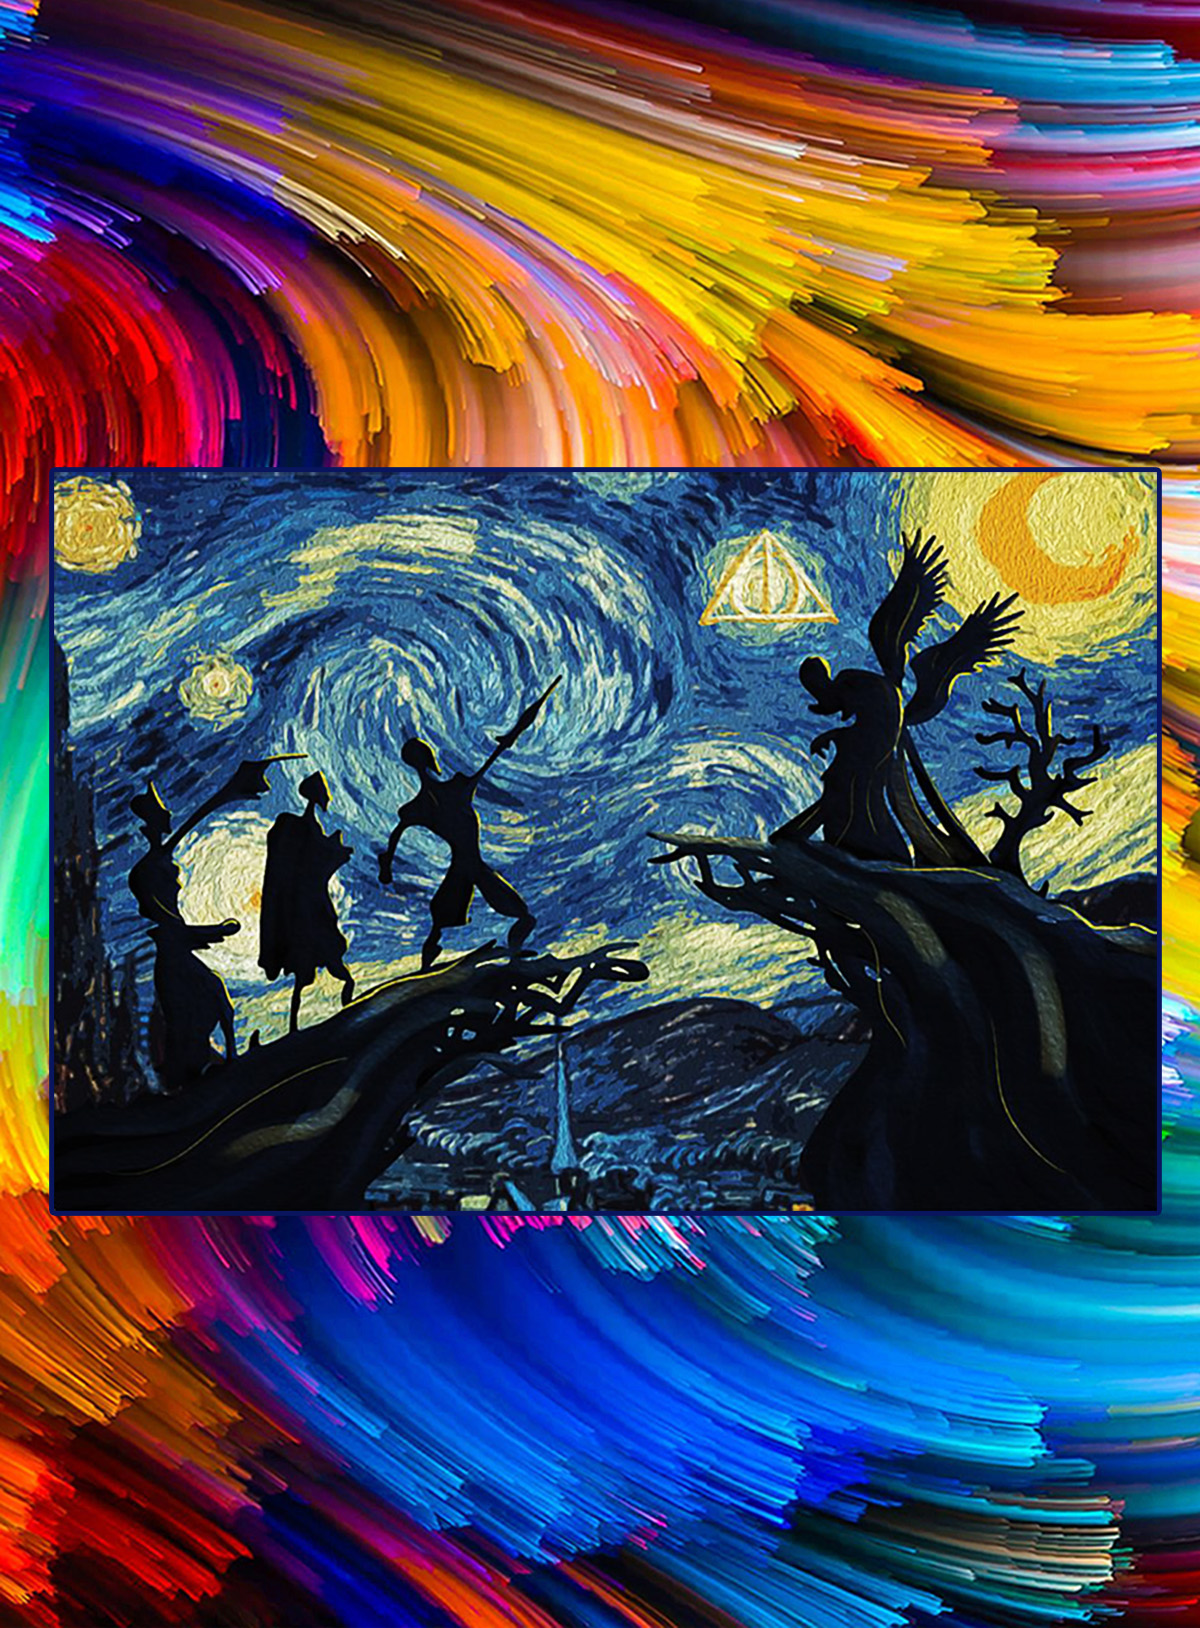 Deathly hallows harry potter starry night poster - A1